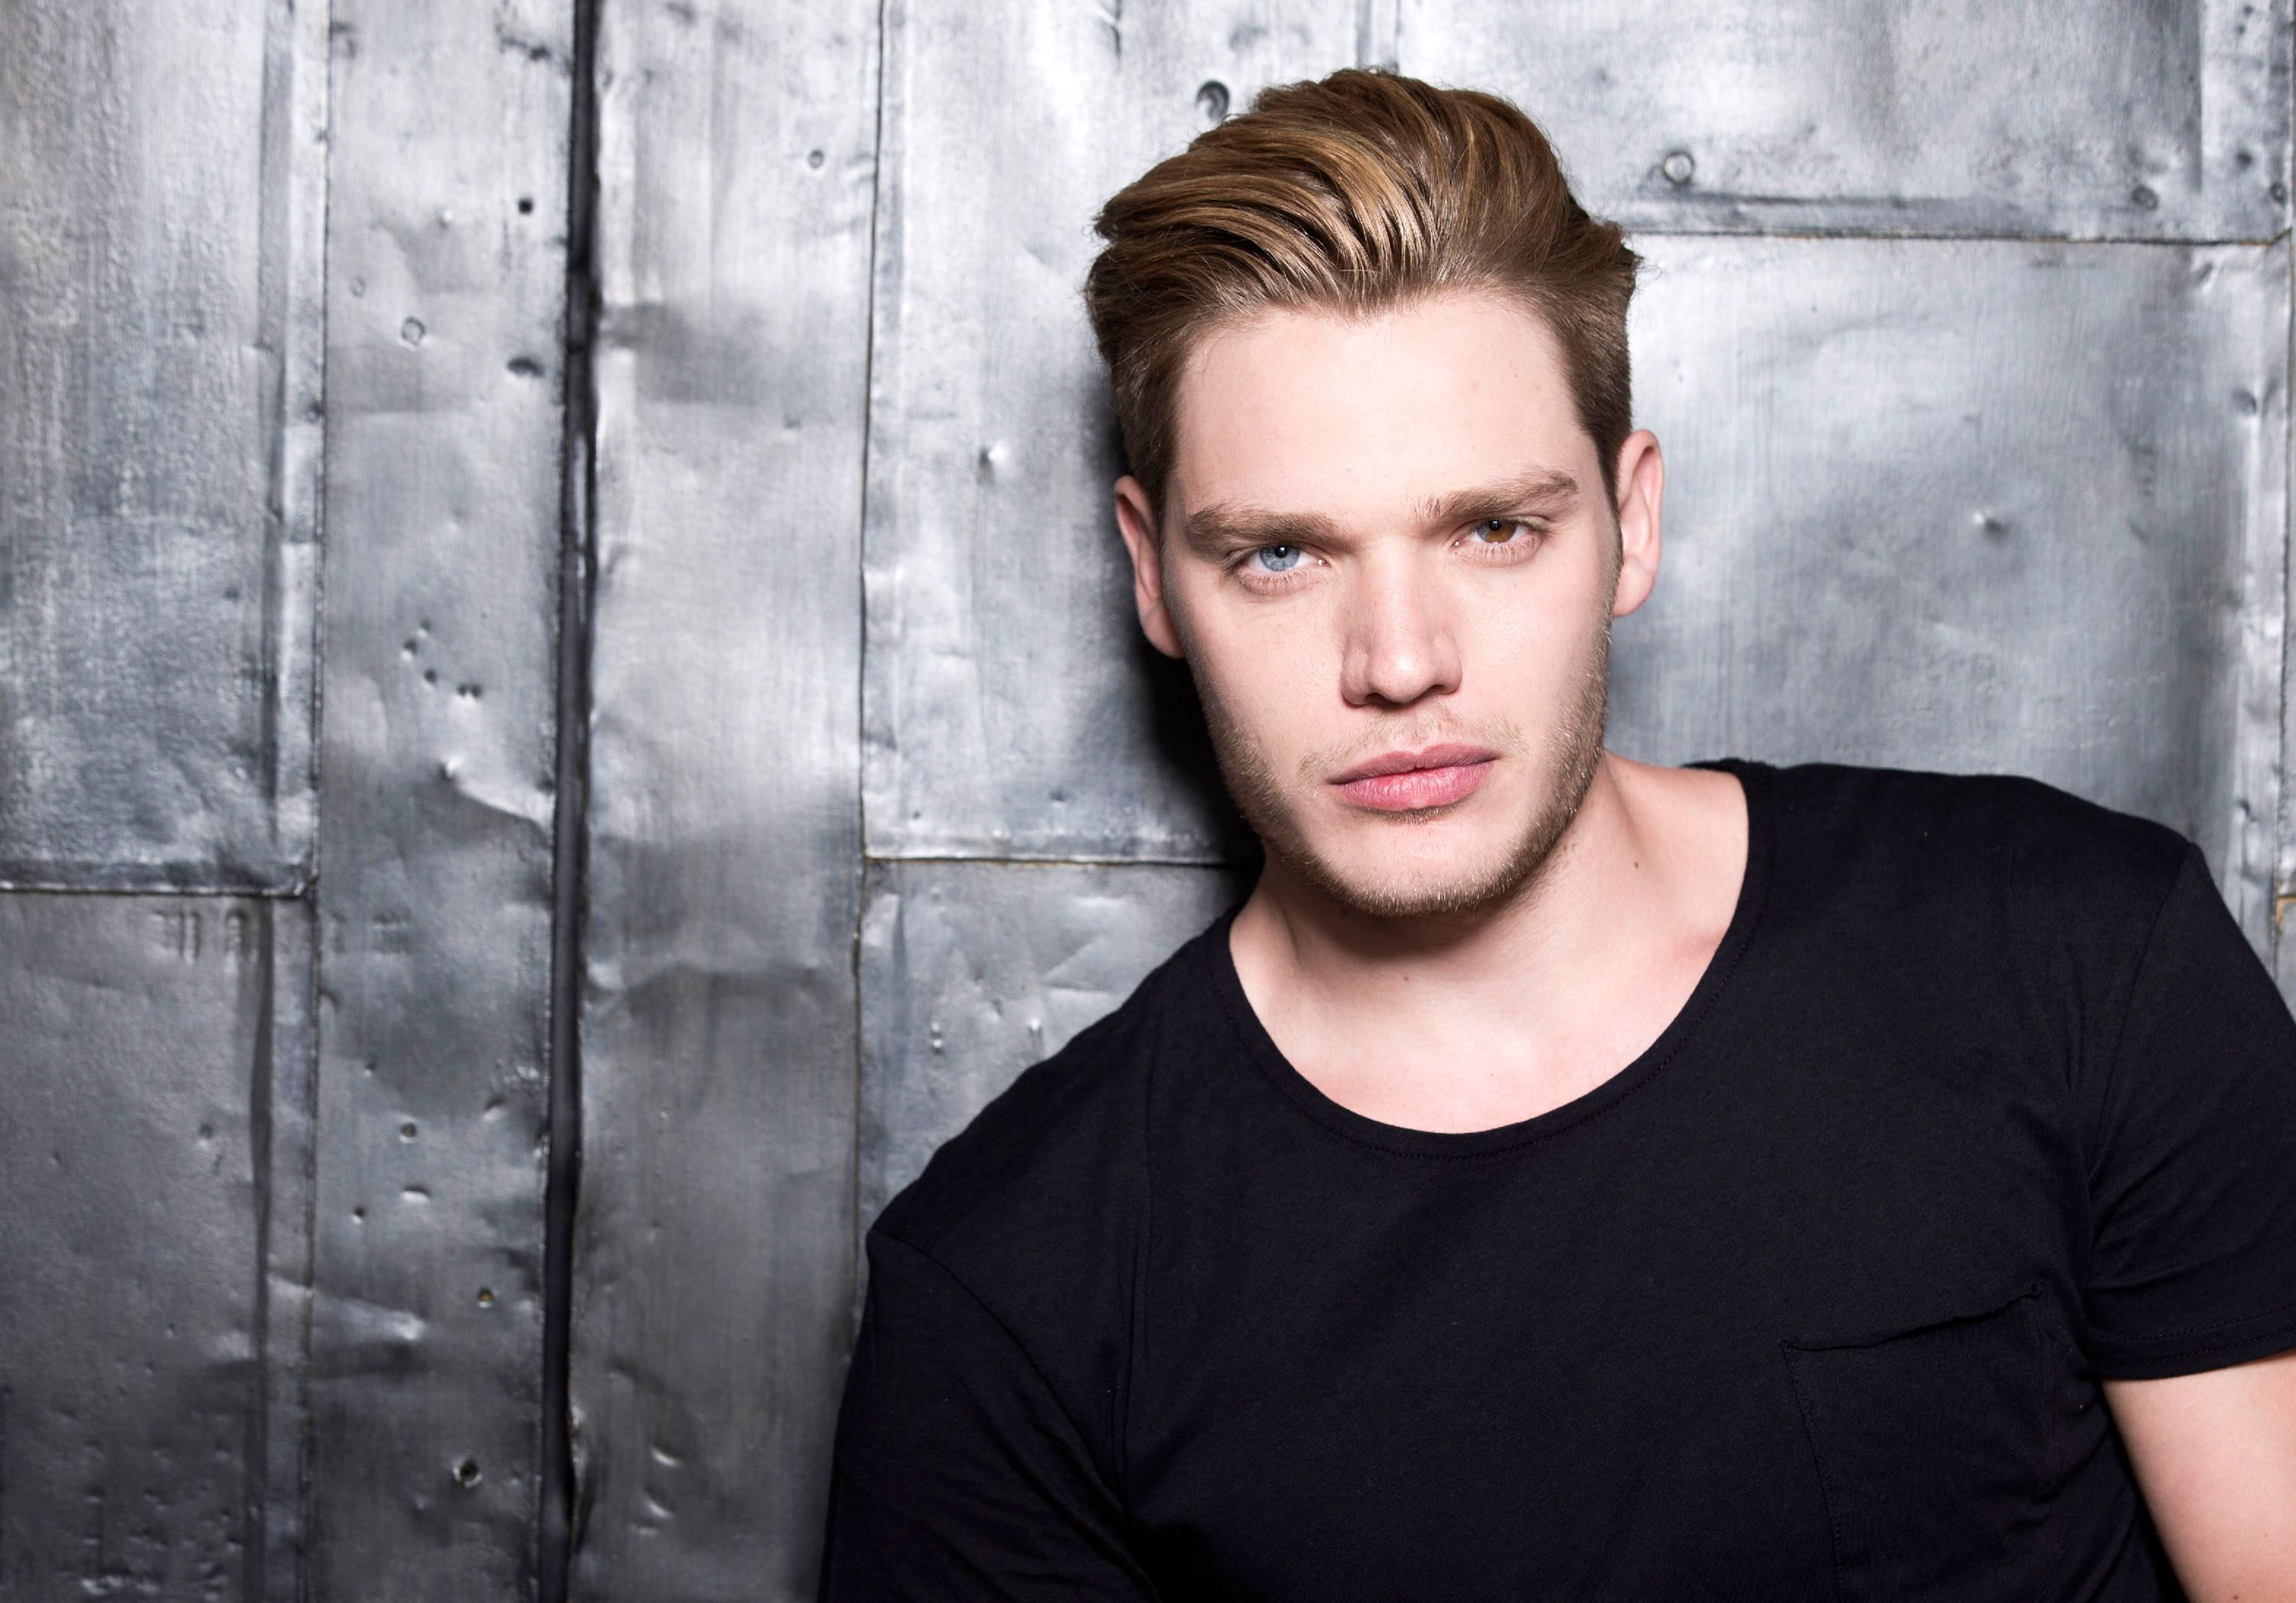 dominic sherwood emeraude toubiadominic sherwood gif, dominic sherwood and sarah hyland, dominic sherwood photoshoot, dominic sherwood gif hunt, dominic sherwood twitter, dominic sherwood gallery, dominic sherwood – song for a friend, dominic sherwood png, dominic sherwood vk, dominic sherwood manip, dominic sherwood wikipedia, dominic sherwood films, dominic sherwood snapchat, dominic sherwood alberto rosende, dominic sherwood gif hunt tumblr, dominic sherwood and matthew daddario, dominic sherwood emeraude toubia, dominic sherwood instagram, dominic sherwood funny moments, dominic sherwood tattoo